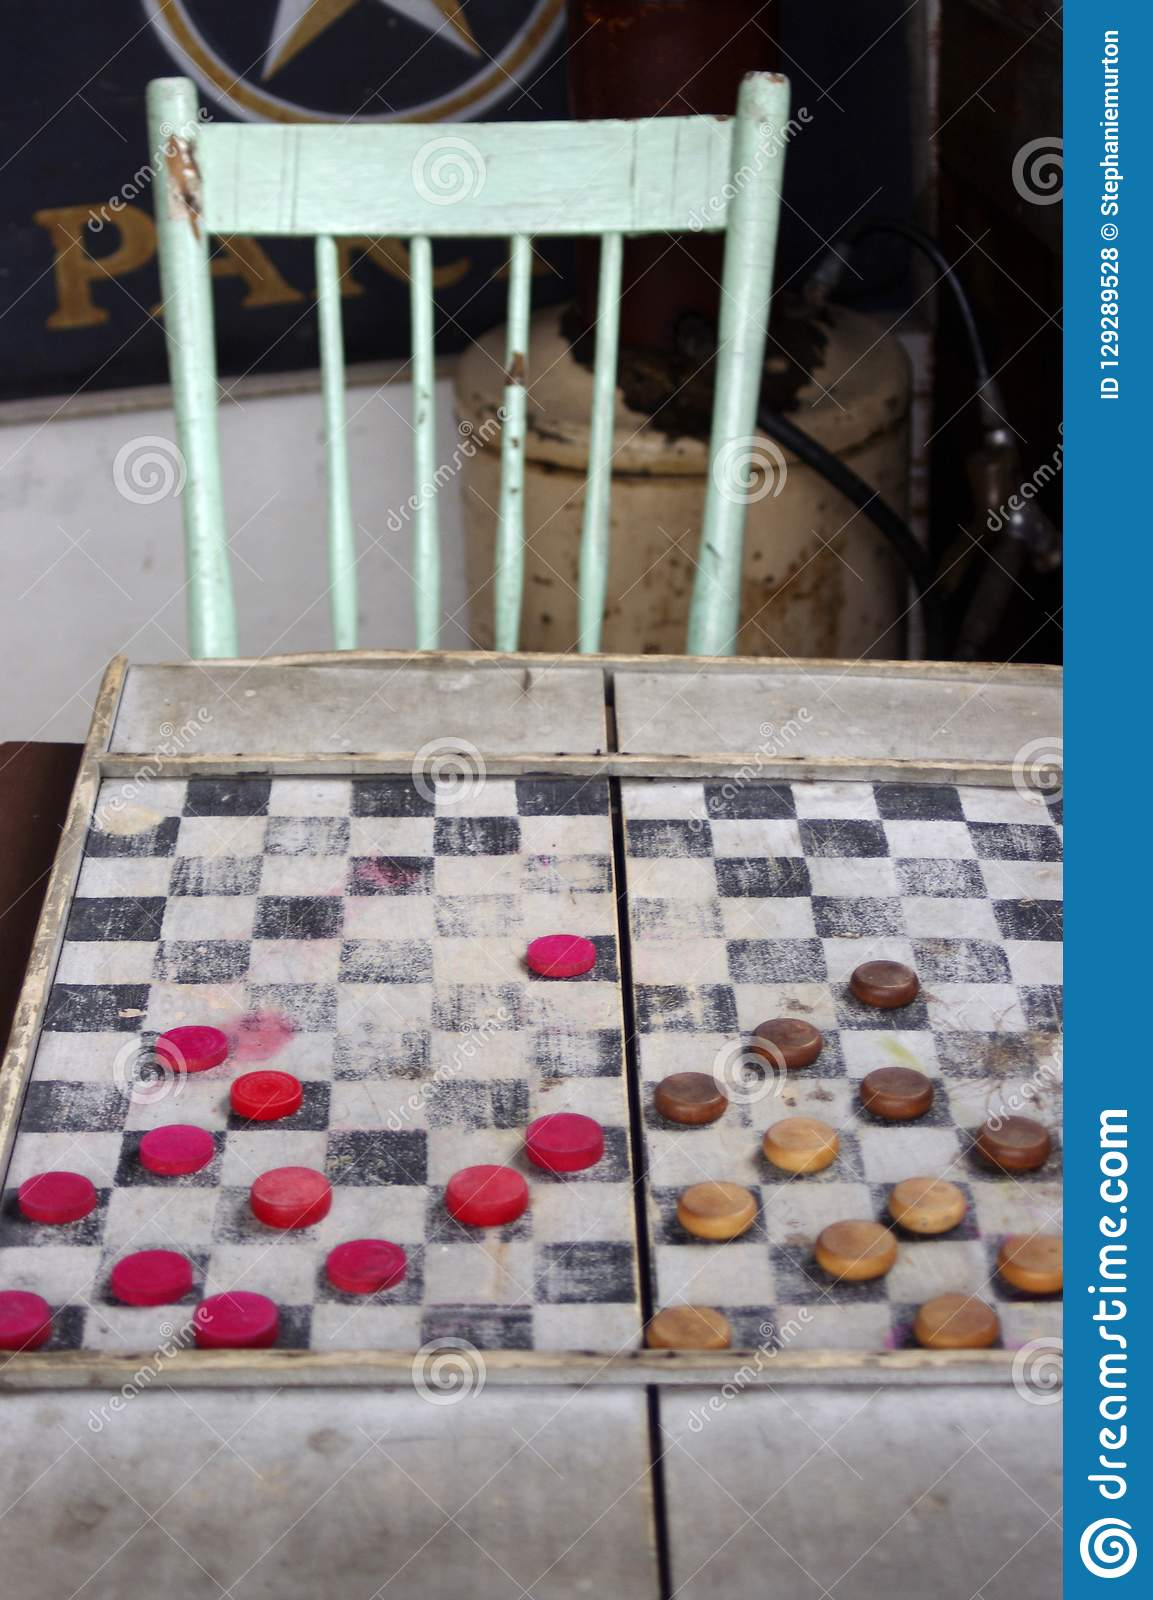 Antique checkers board game with chair in background